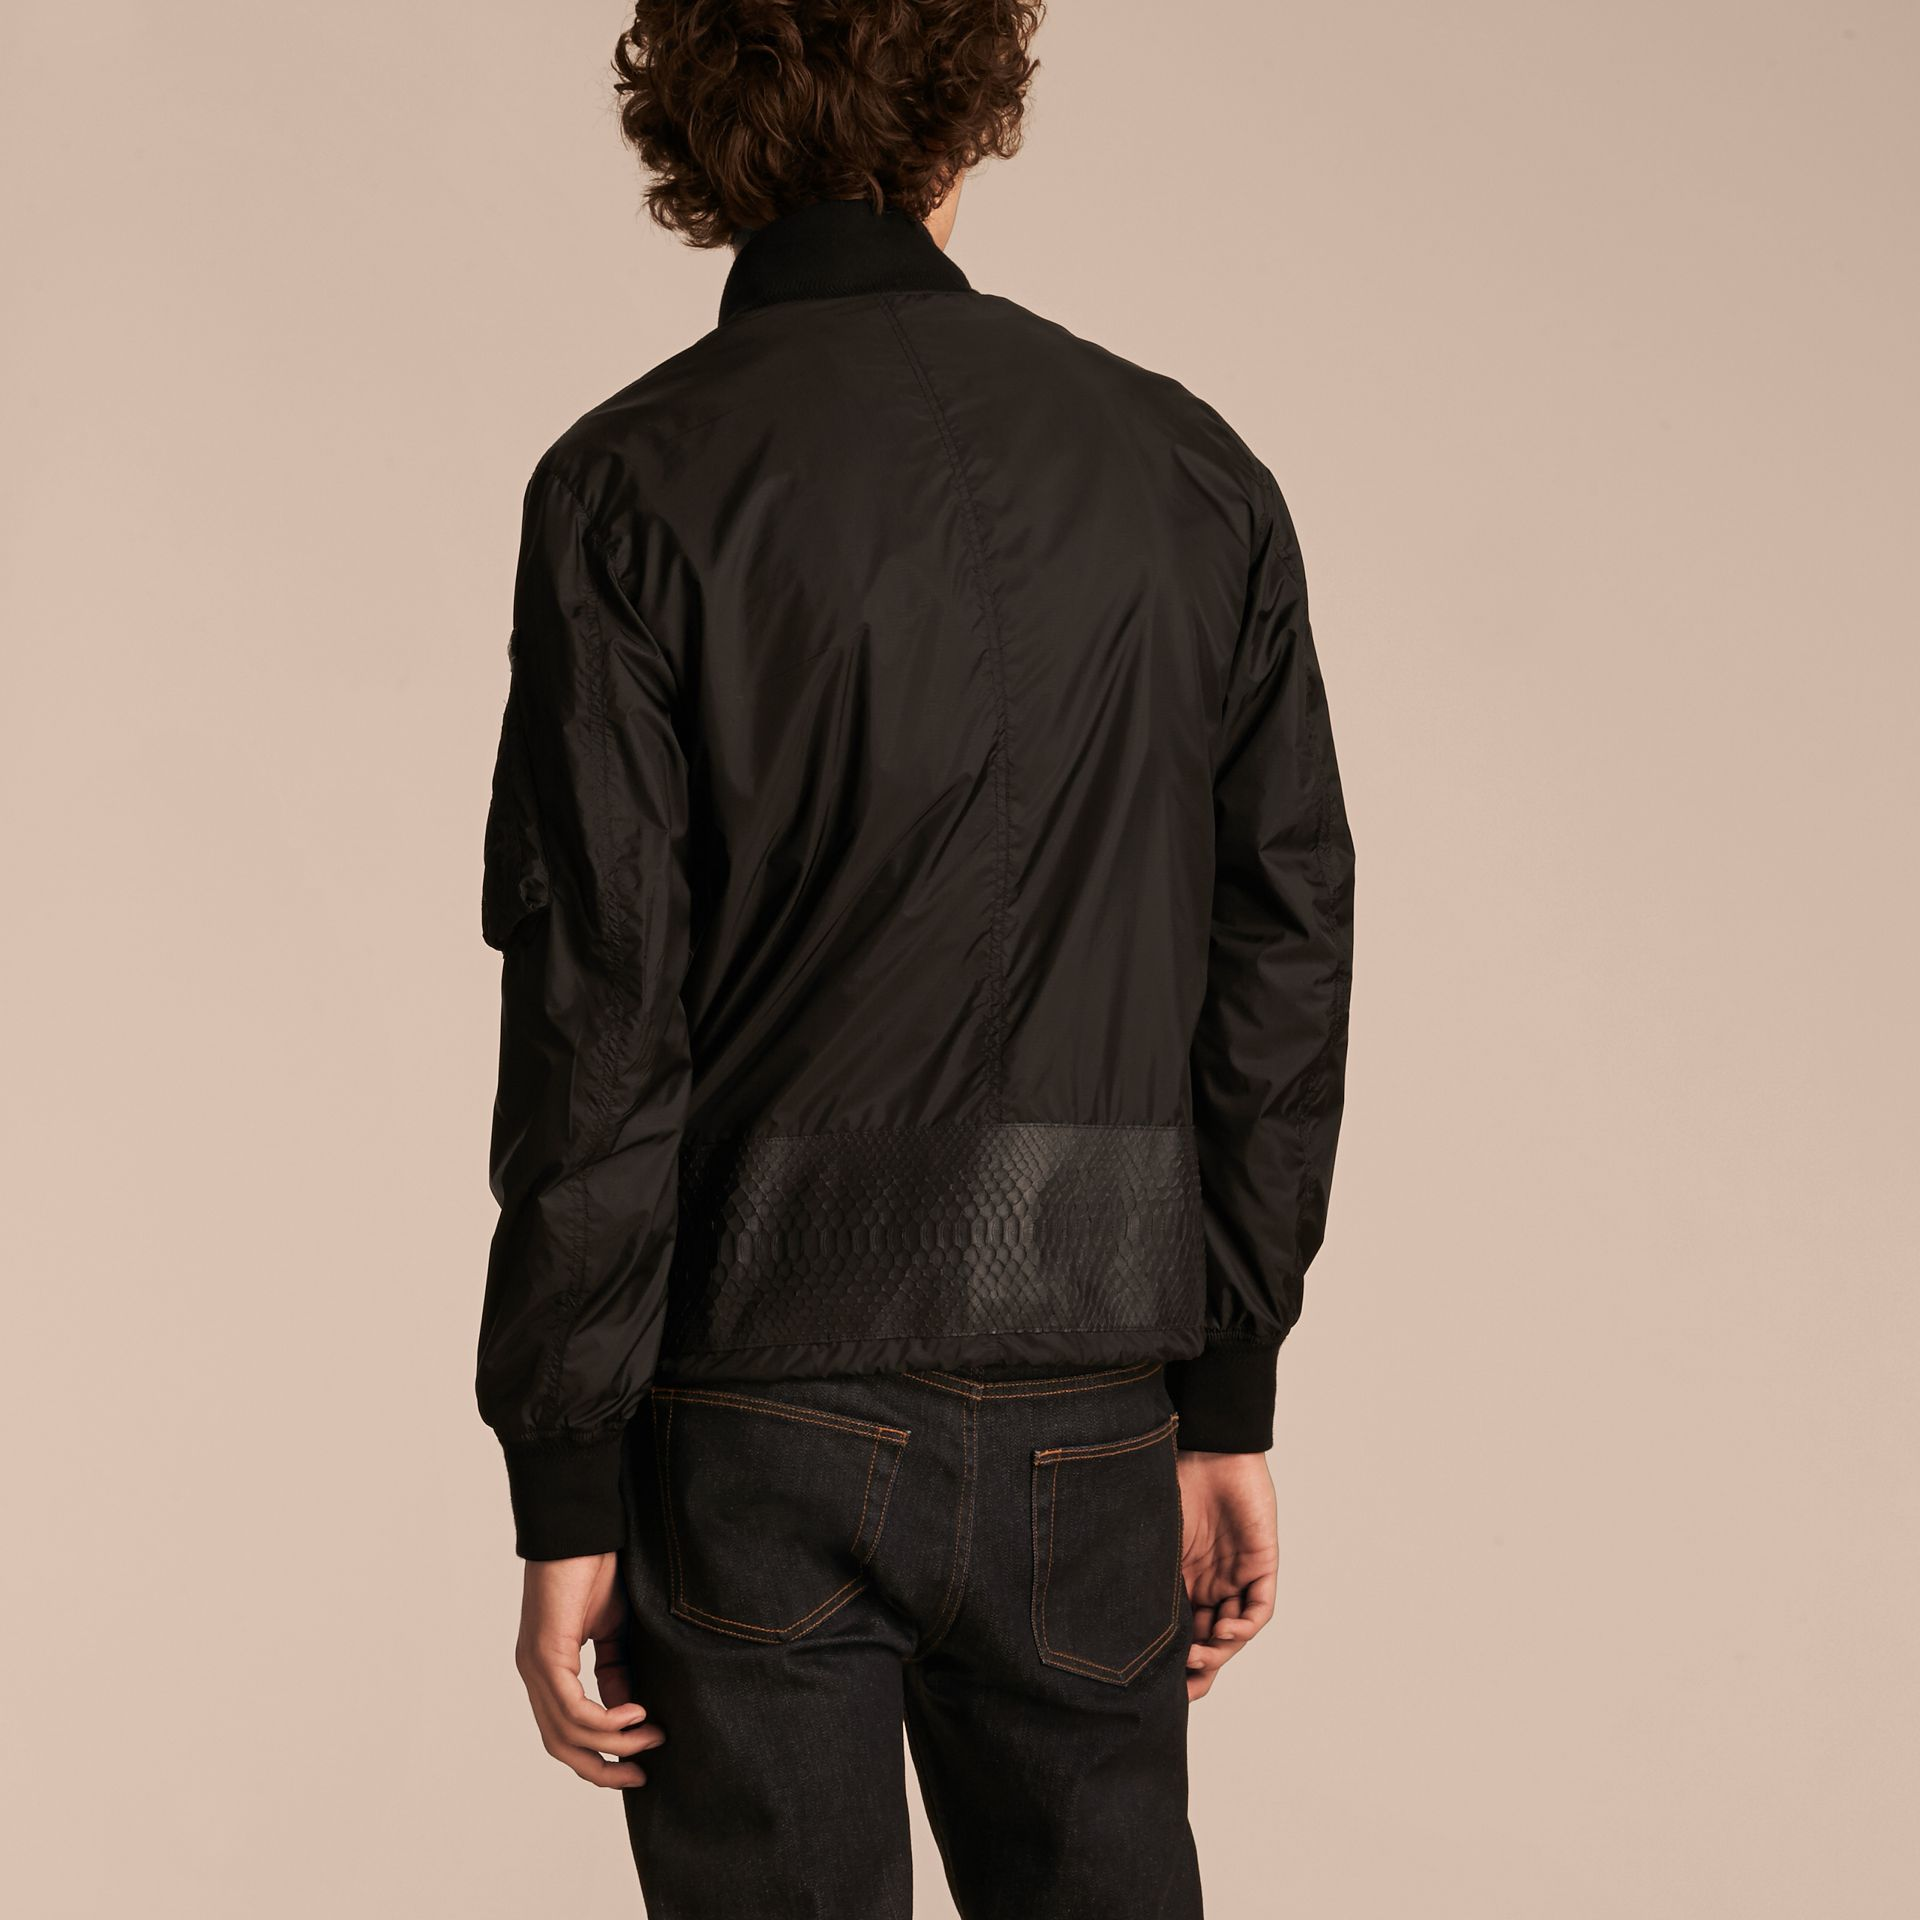 Lightweight Technical Bomber Jacket with Snakeskin in Black - Men | Burberry - gallery image 3